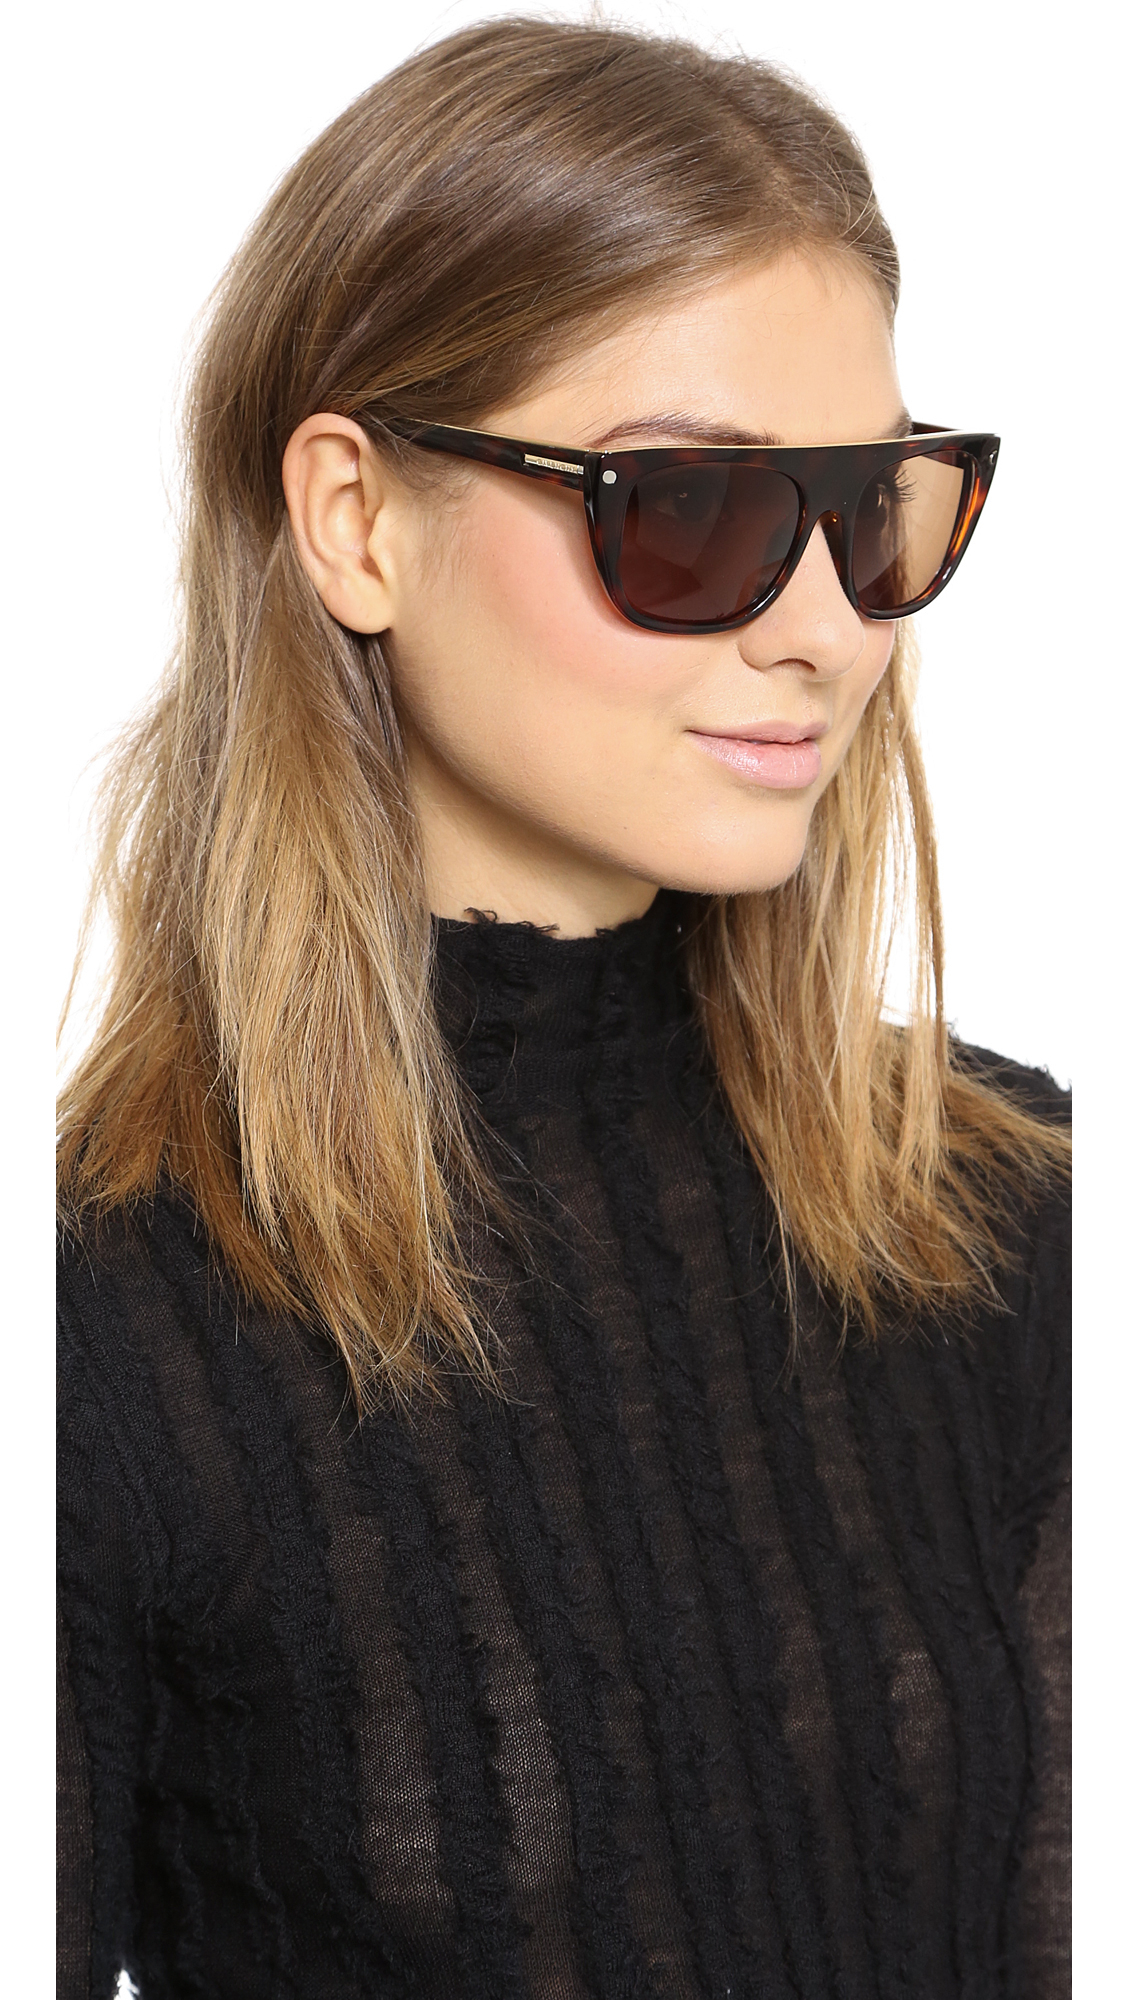 c3370826b3 Givenchy Flat Top Sunglasses in Brown - Lyst